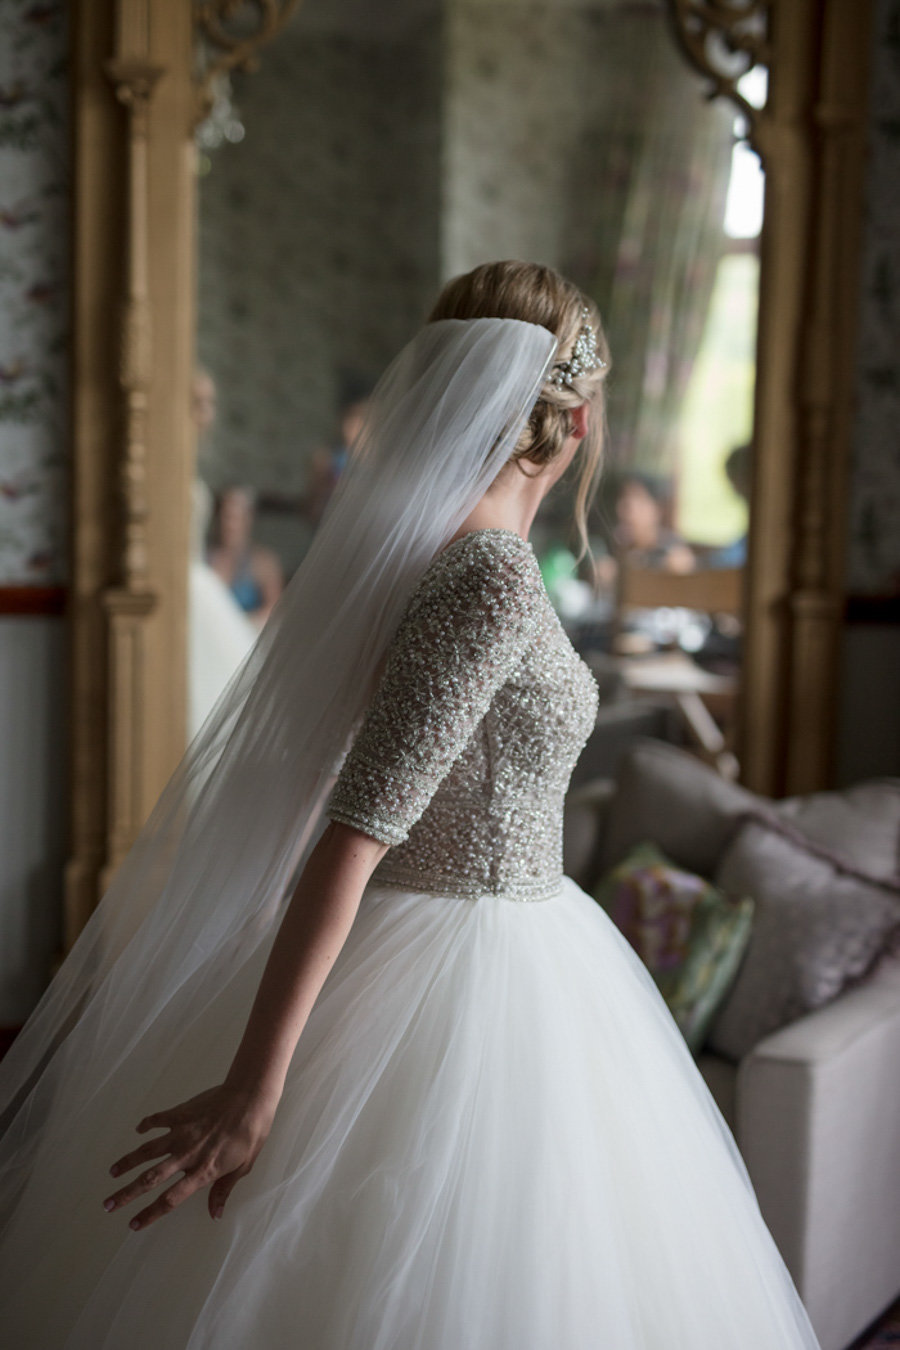 Huntsham Court Bride getting ready